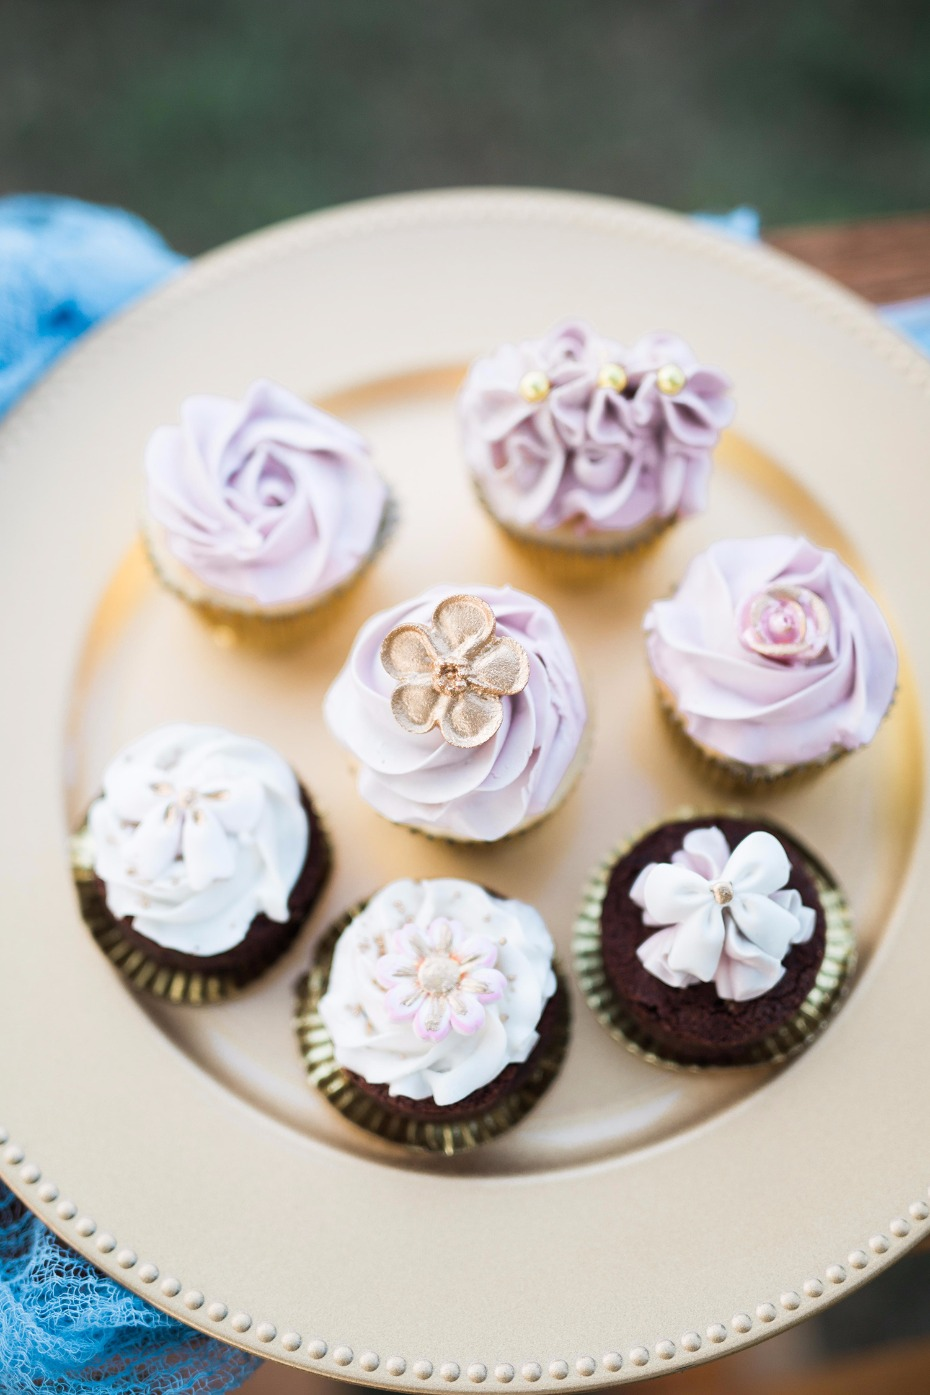 Tasty wedding cupcakes